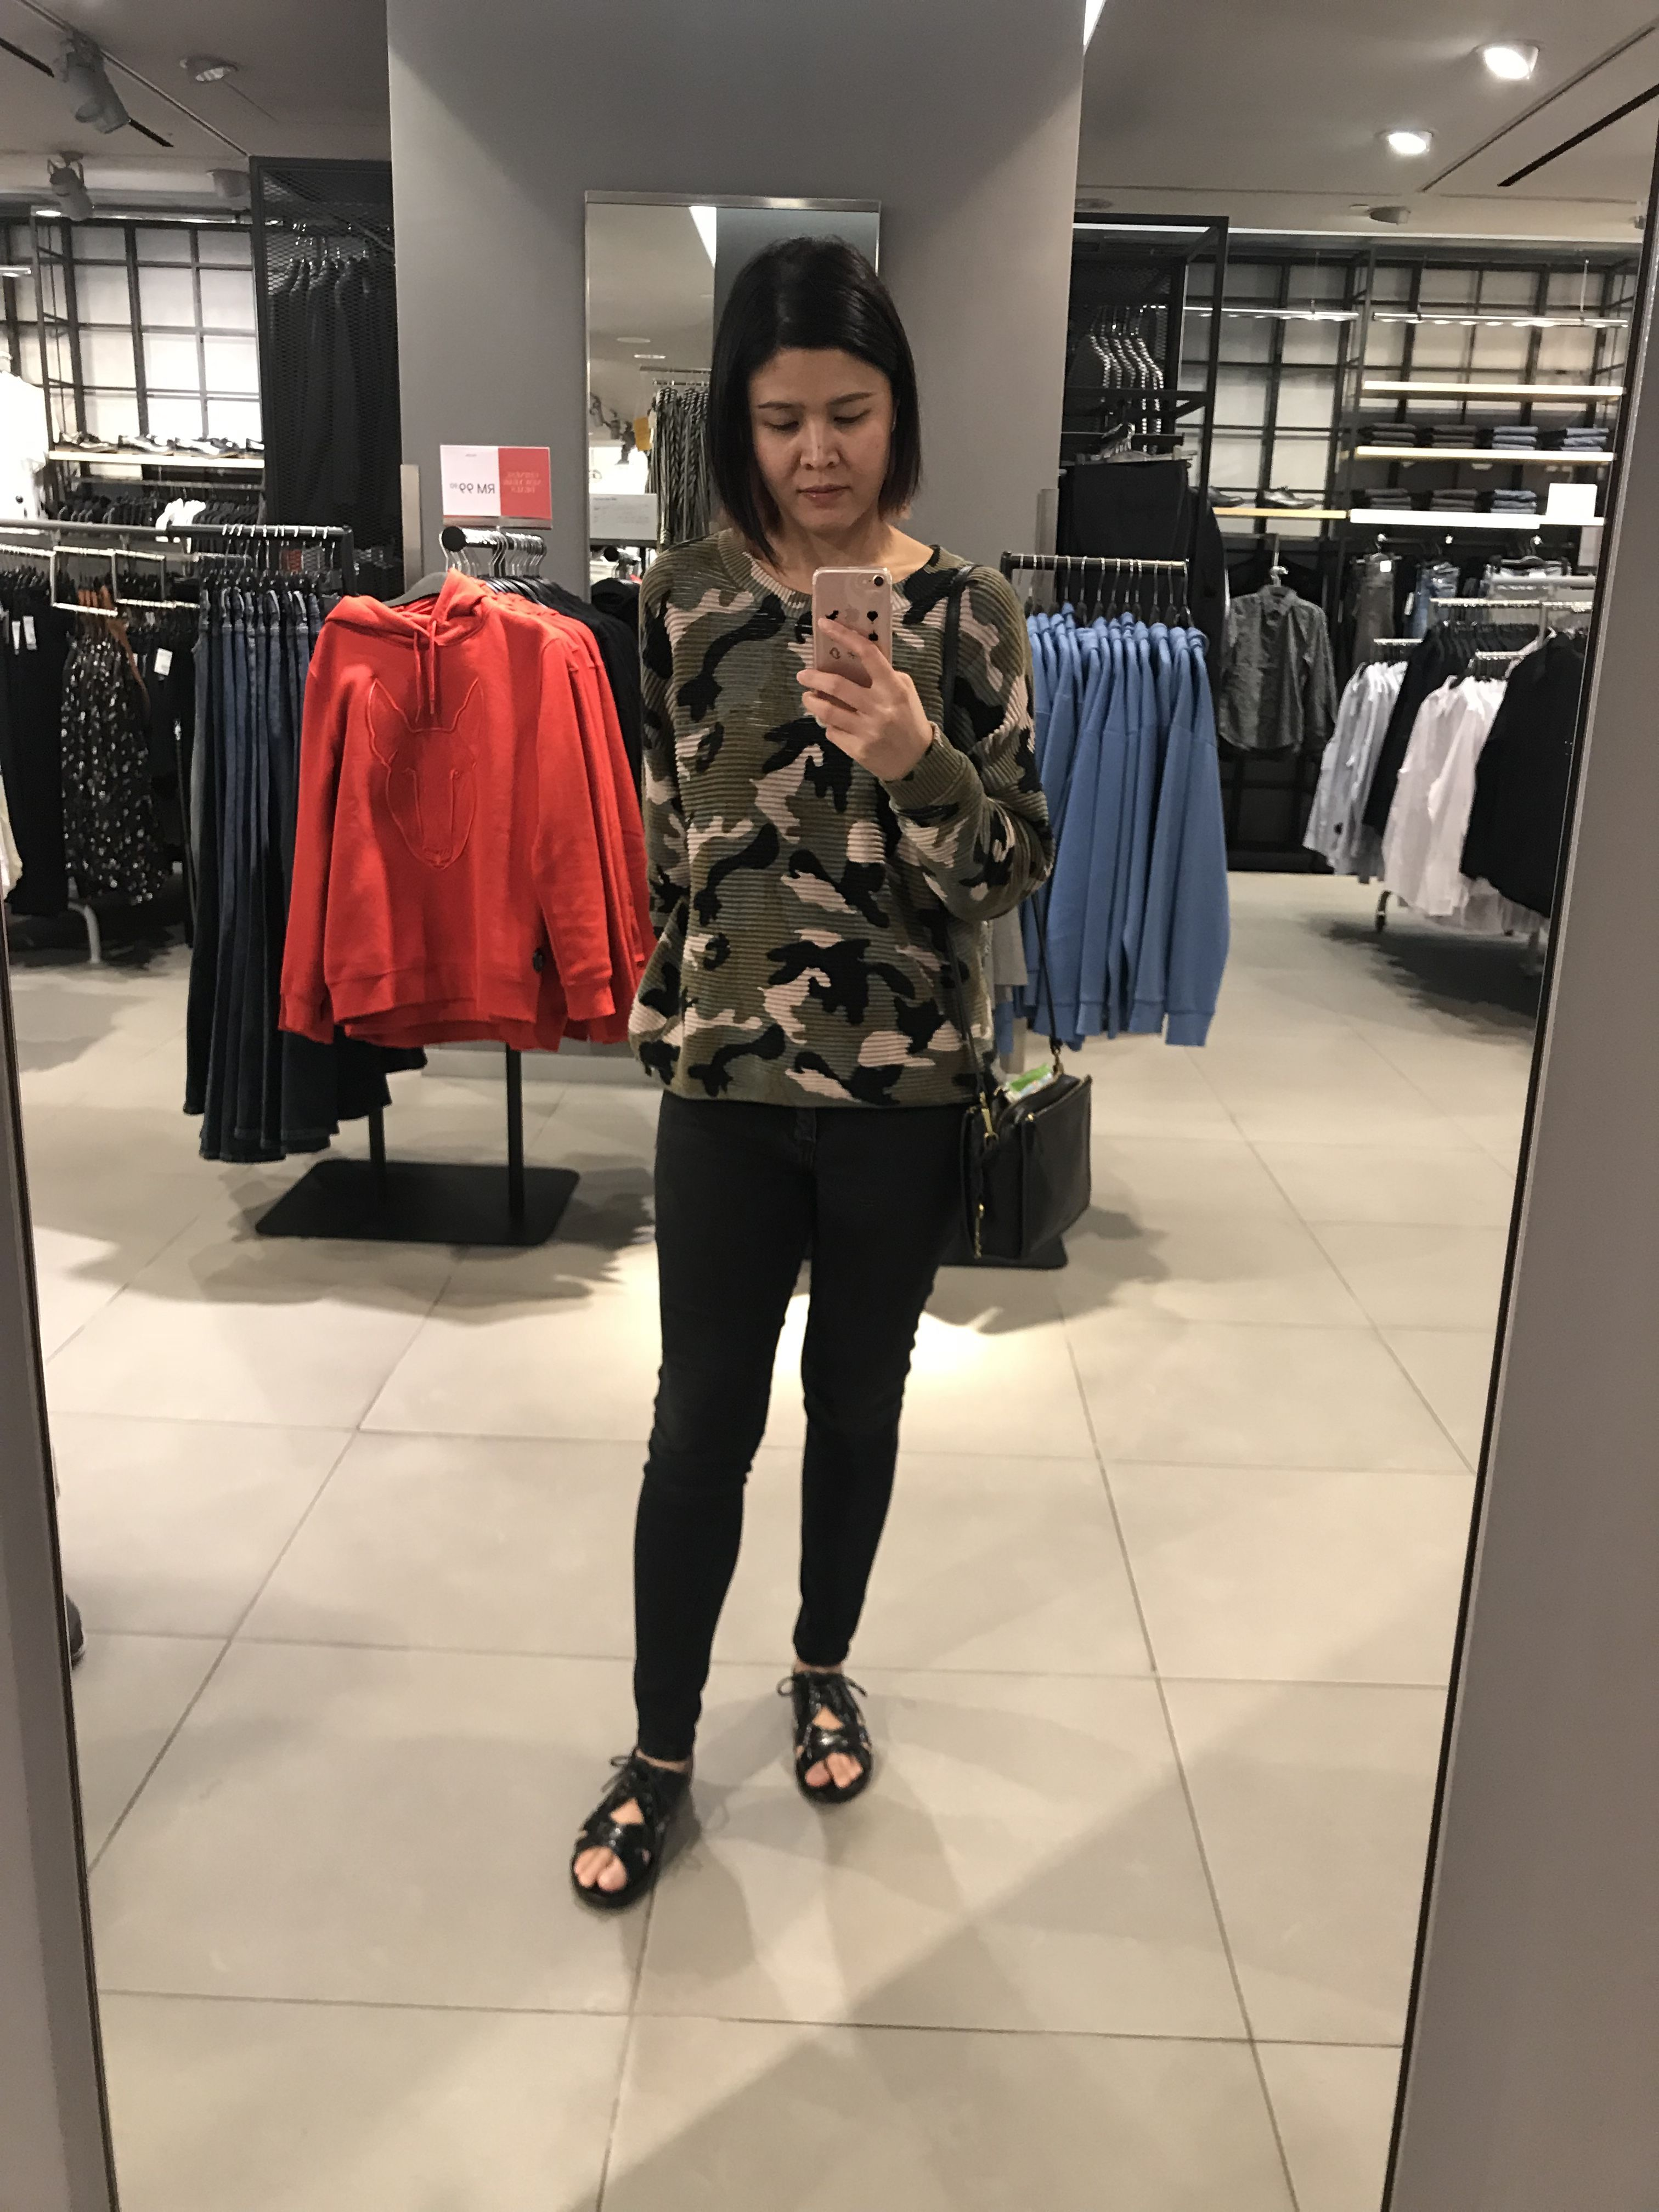 c6840231cf OOTD: Camo long sleeve - H&M, Jeans - Forever21, Sandals - Lewre, Crossbody  Sling- Fossil